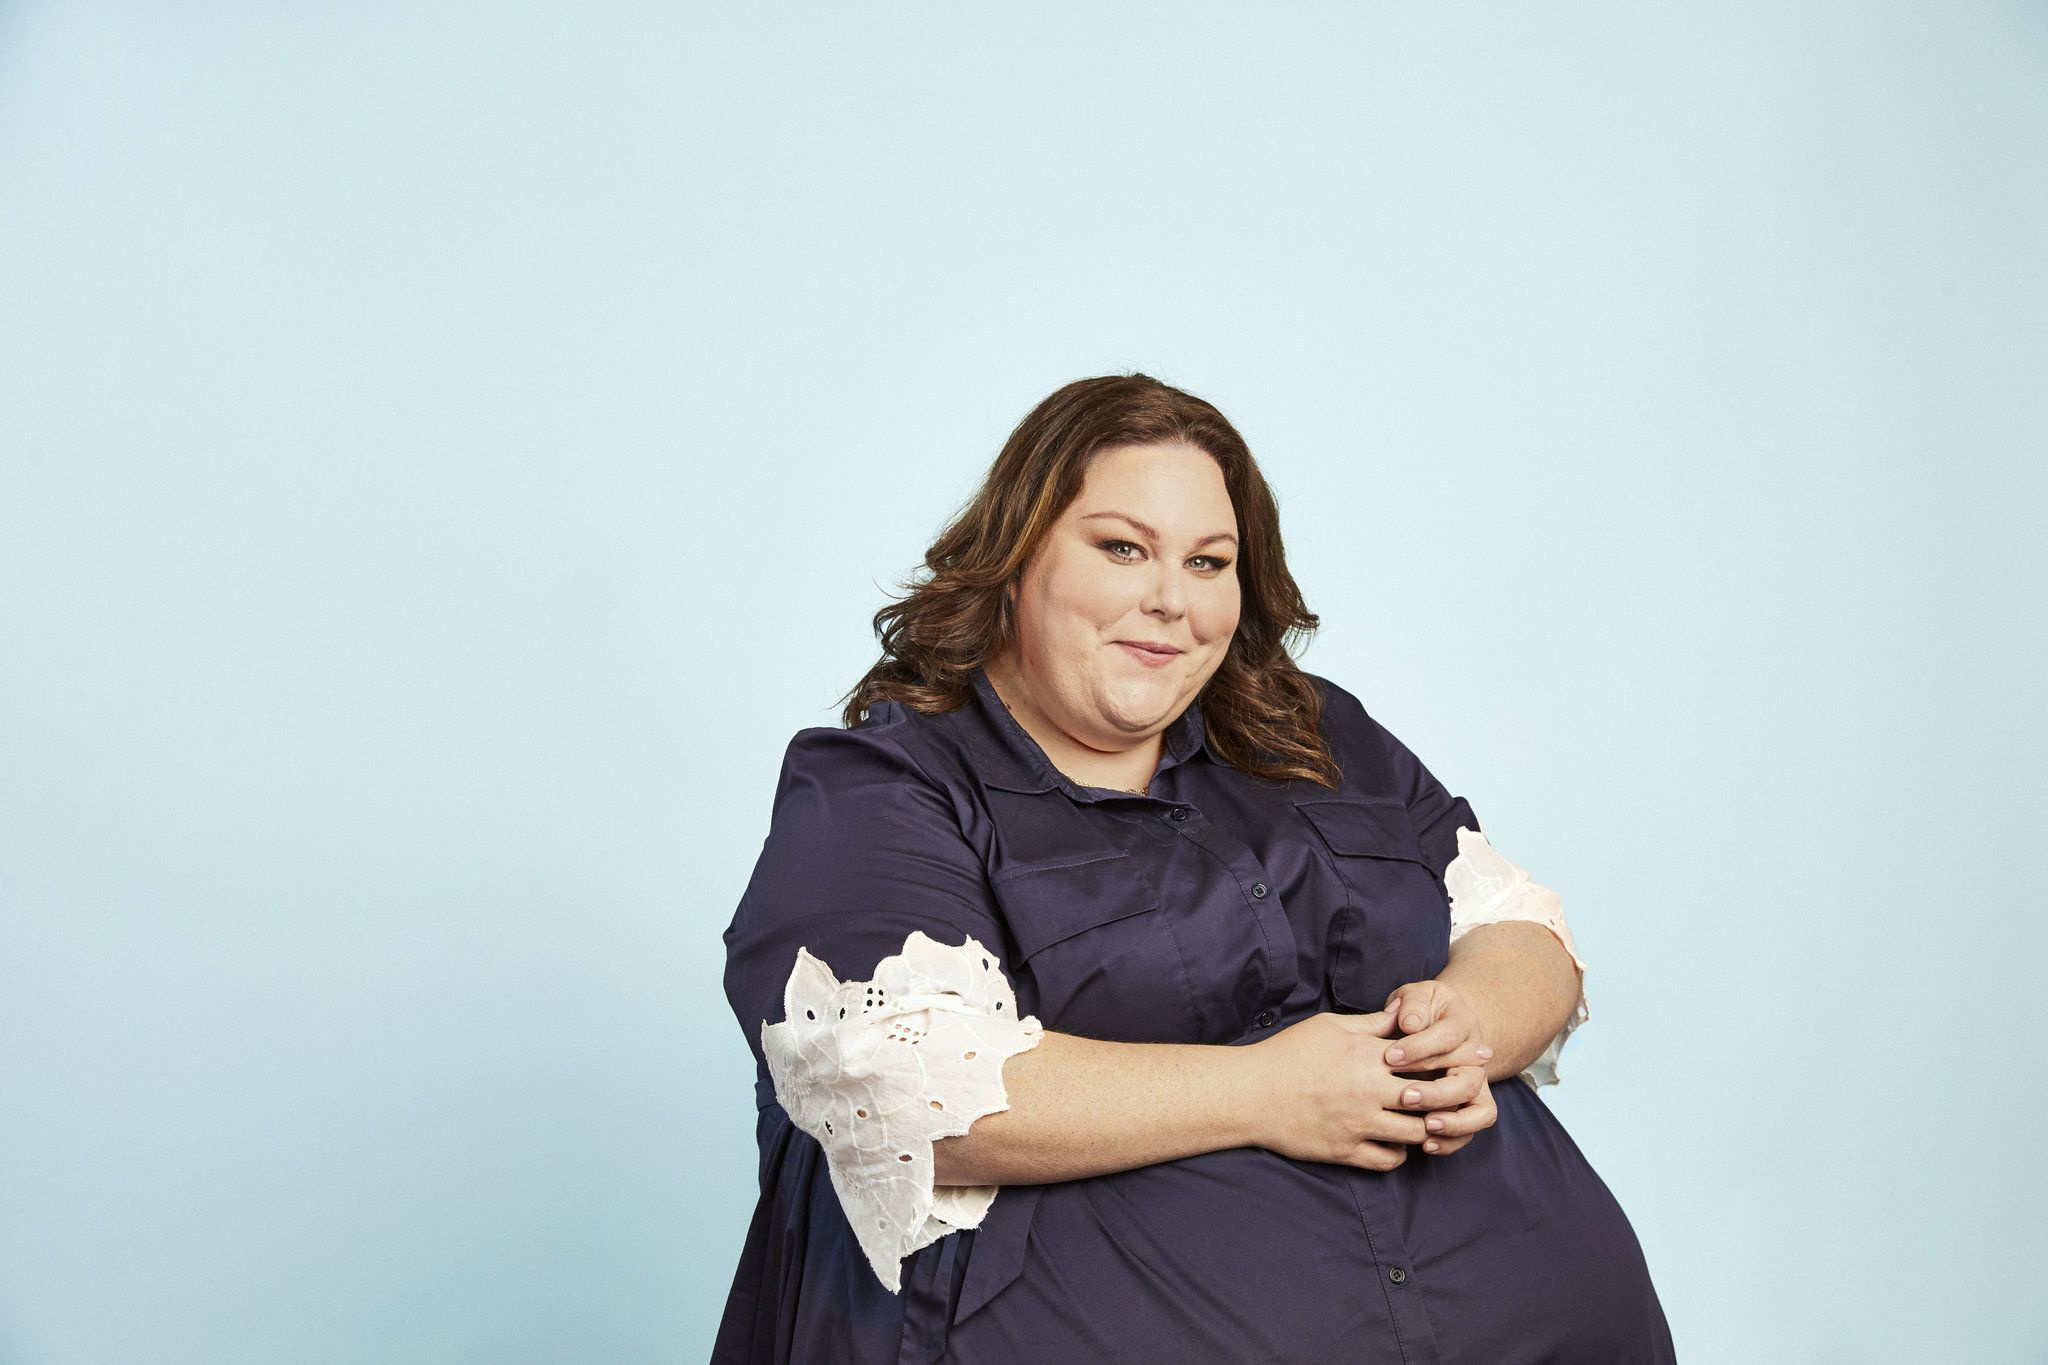 """Chrissy Metz scored her big break when she landed her role on NBC's """"This Is Us,"""" which premiered in 2016. Before that, she s"""